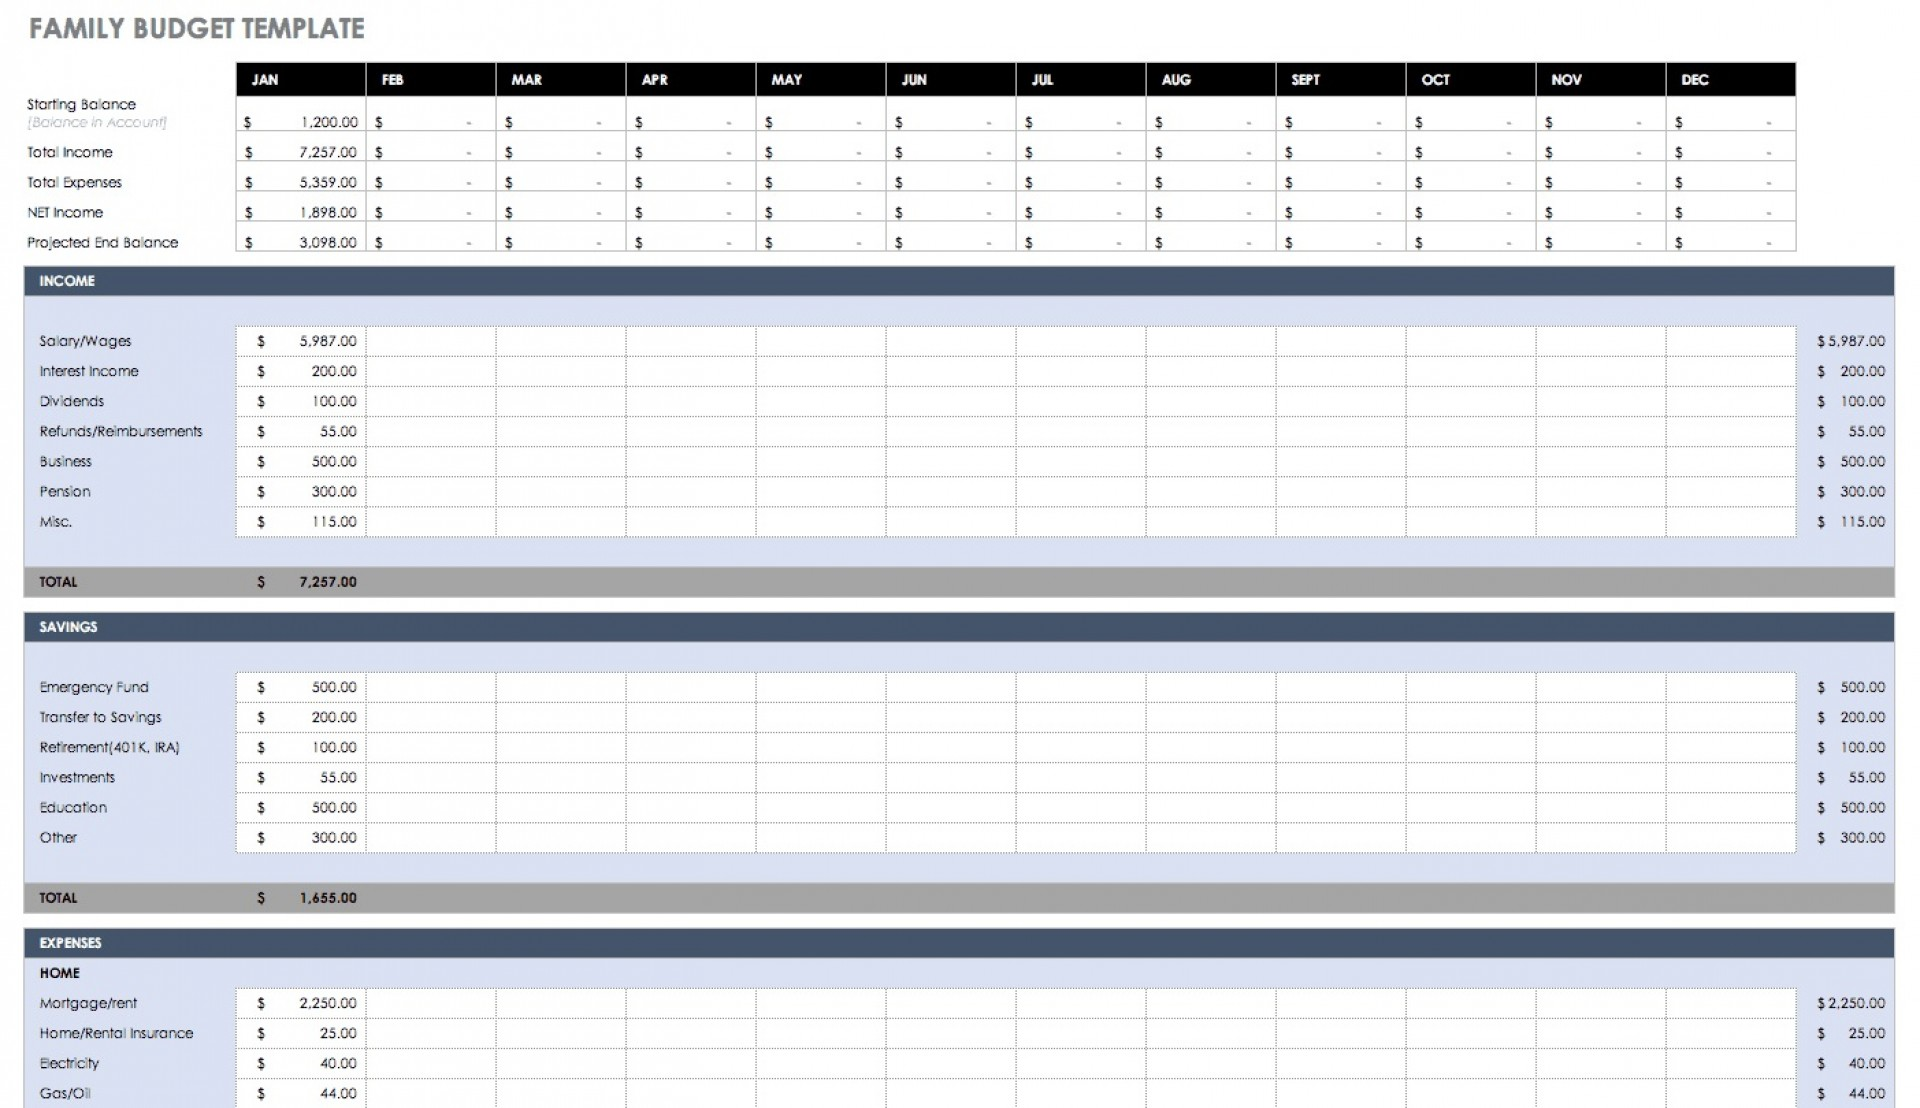 005 Awesome Budget Template In Excel High Resolution  Layout 20131920